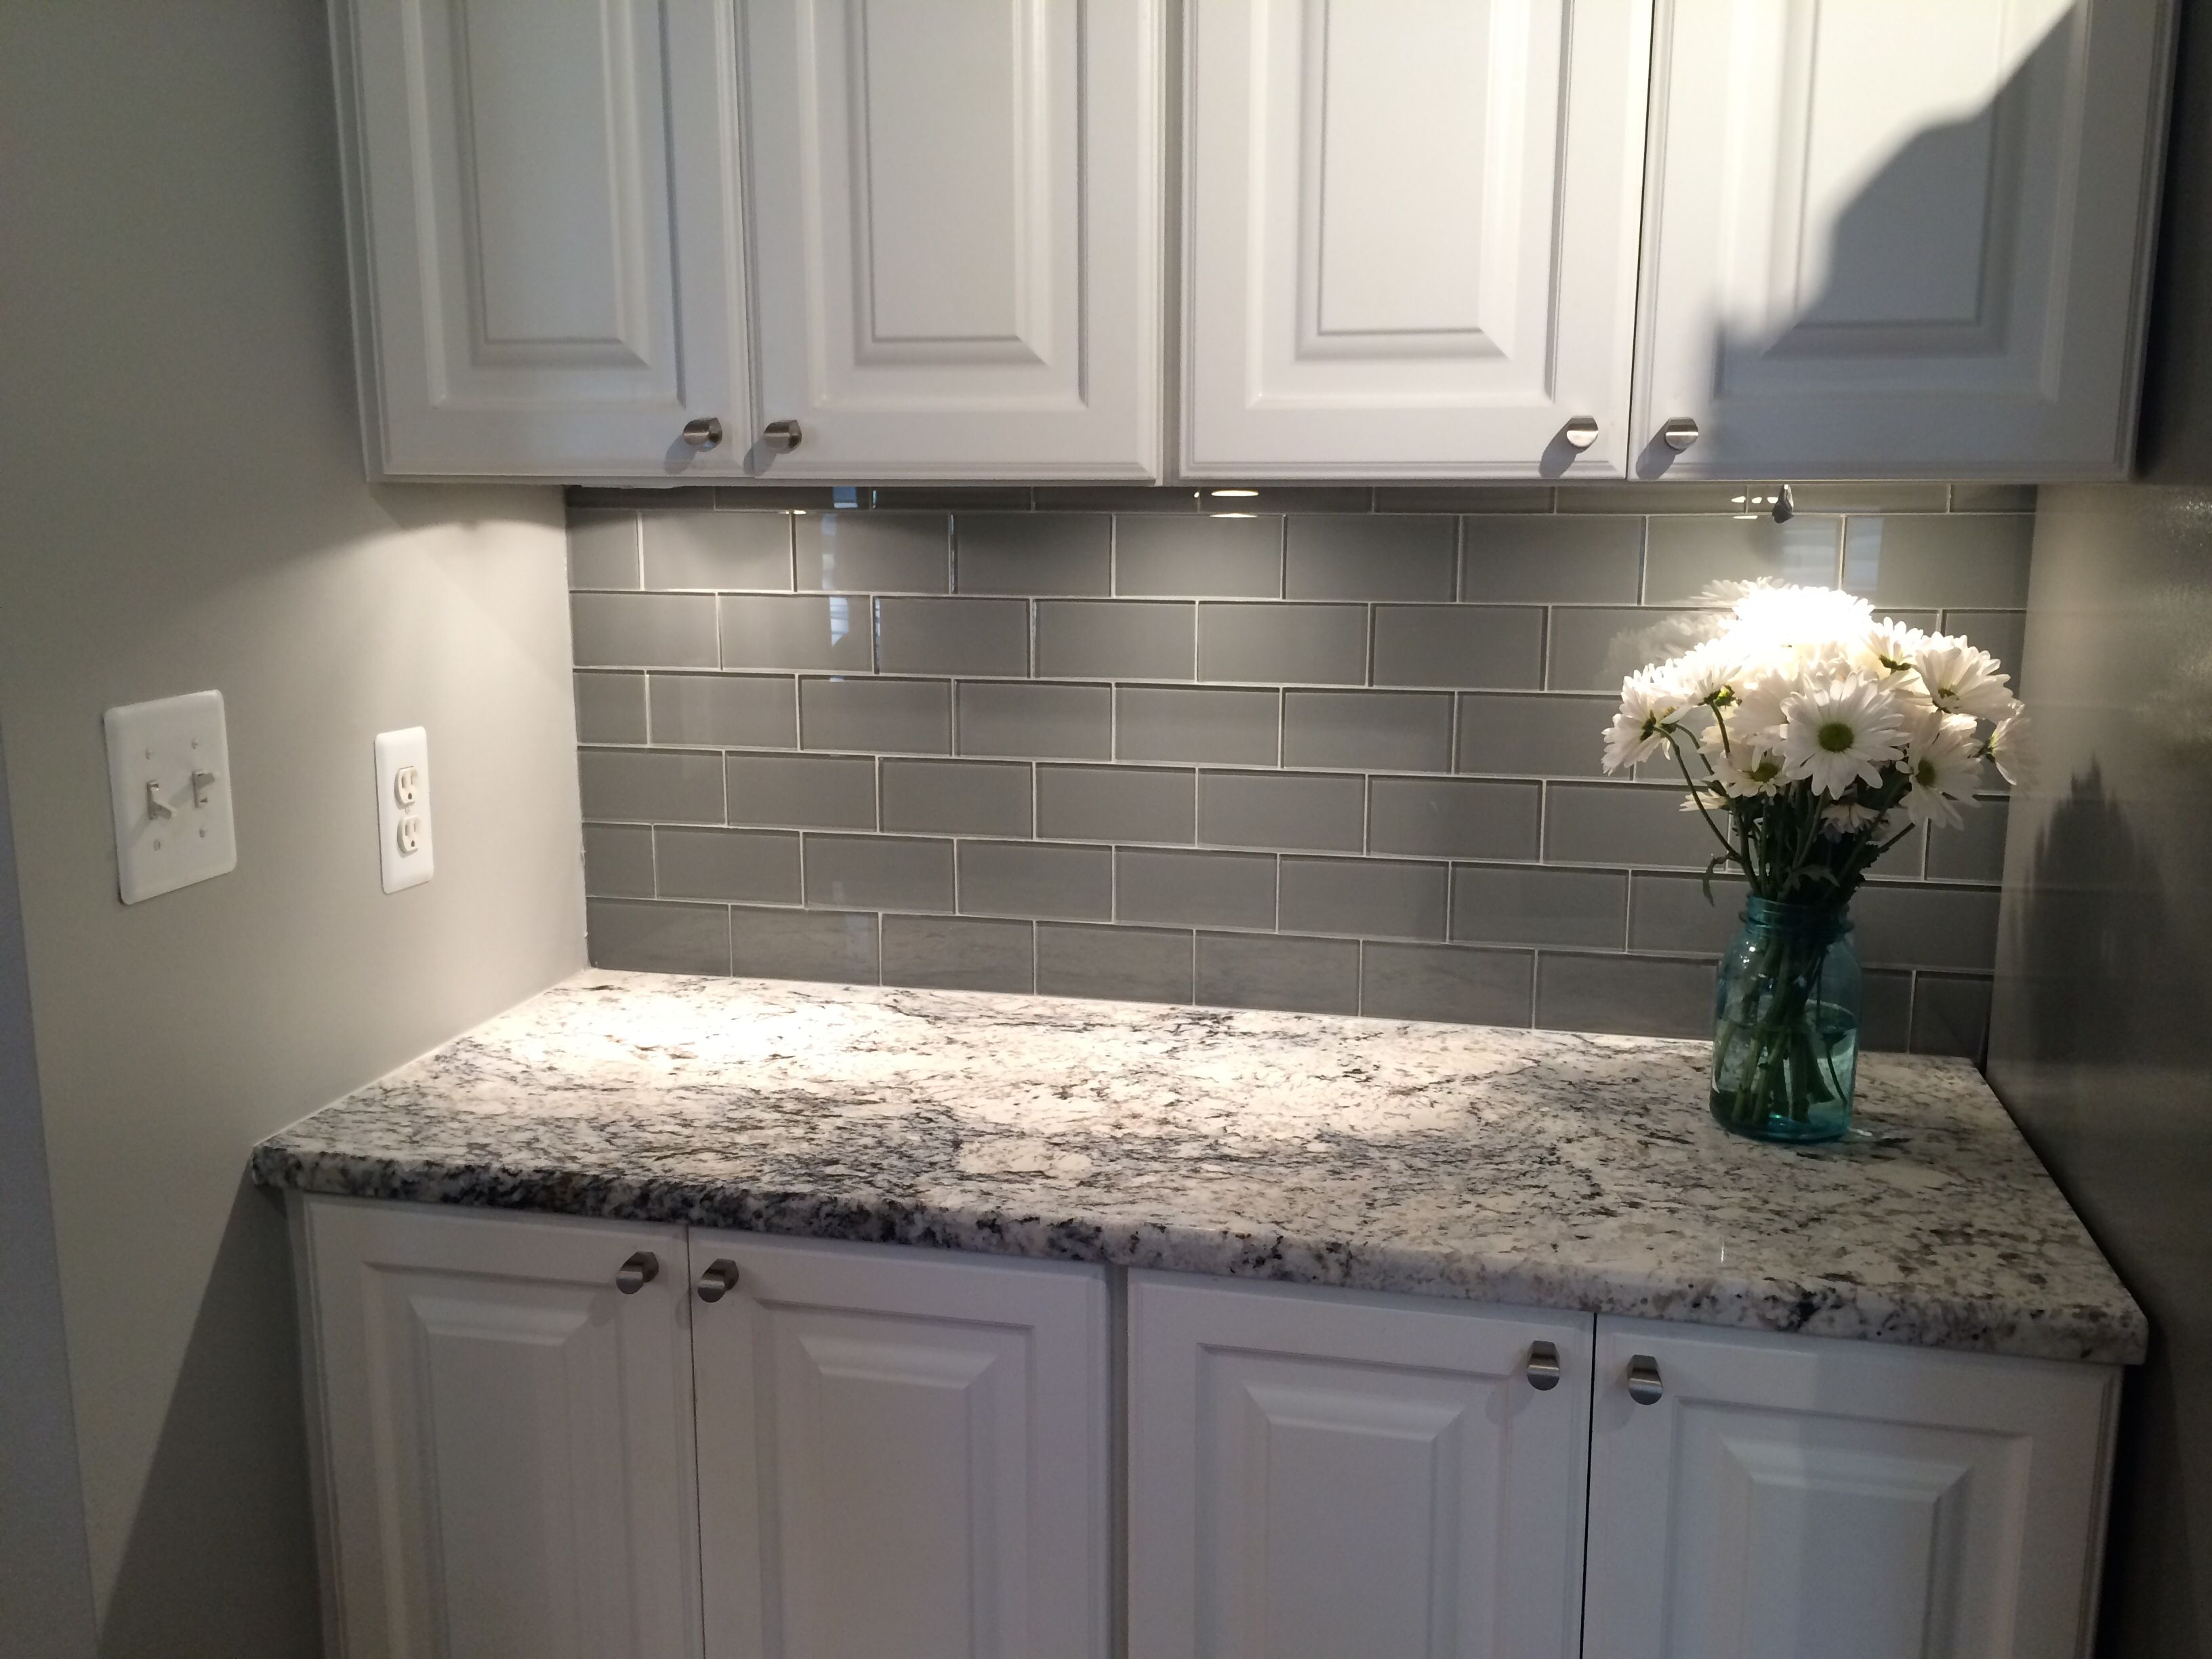 caledonia granite tile kitchen countertops Grey Glass Subway Tile Backsplash And White Cabinet For Small Space